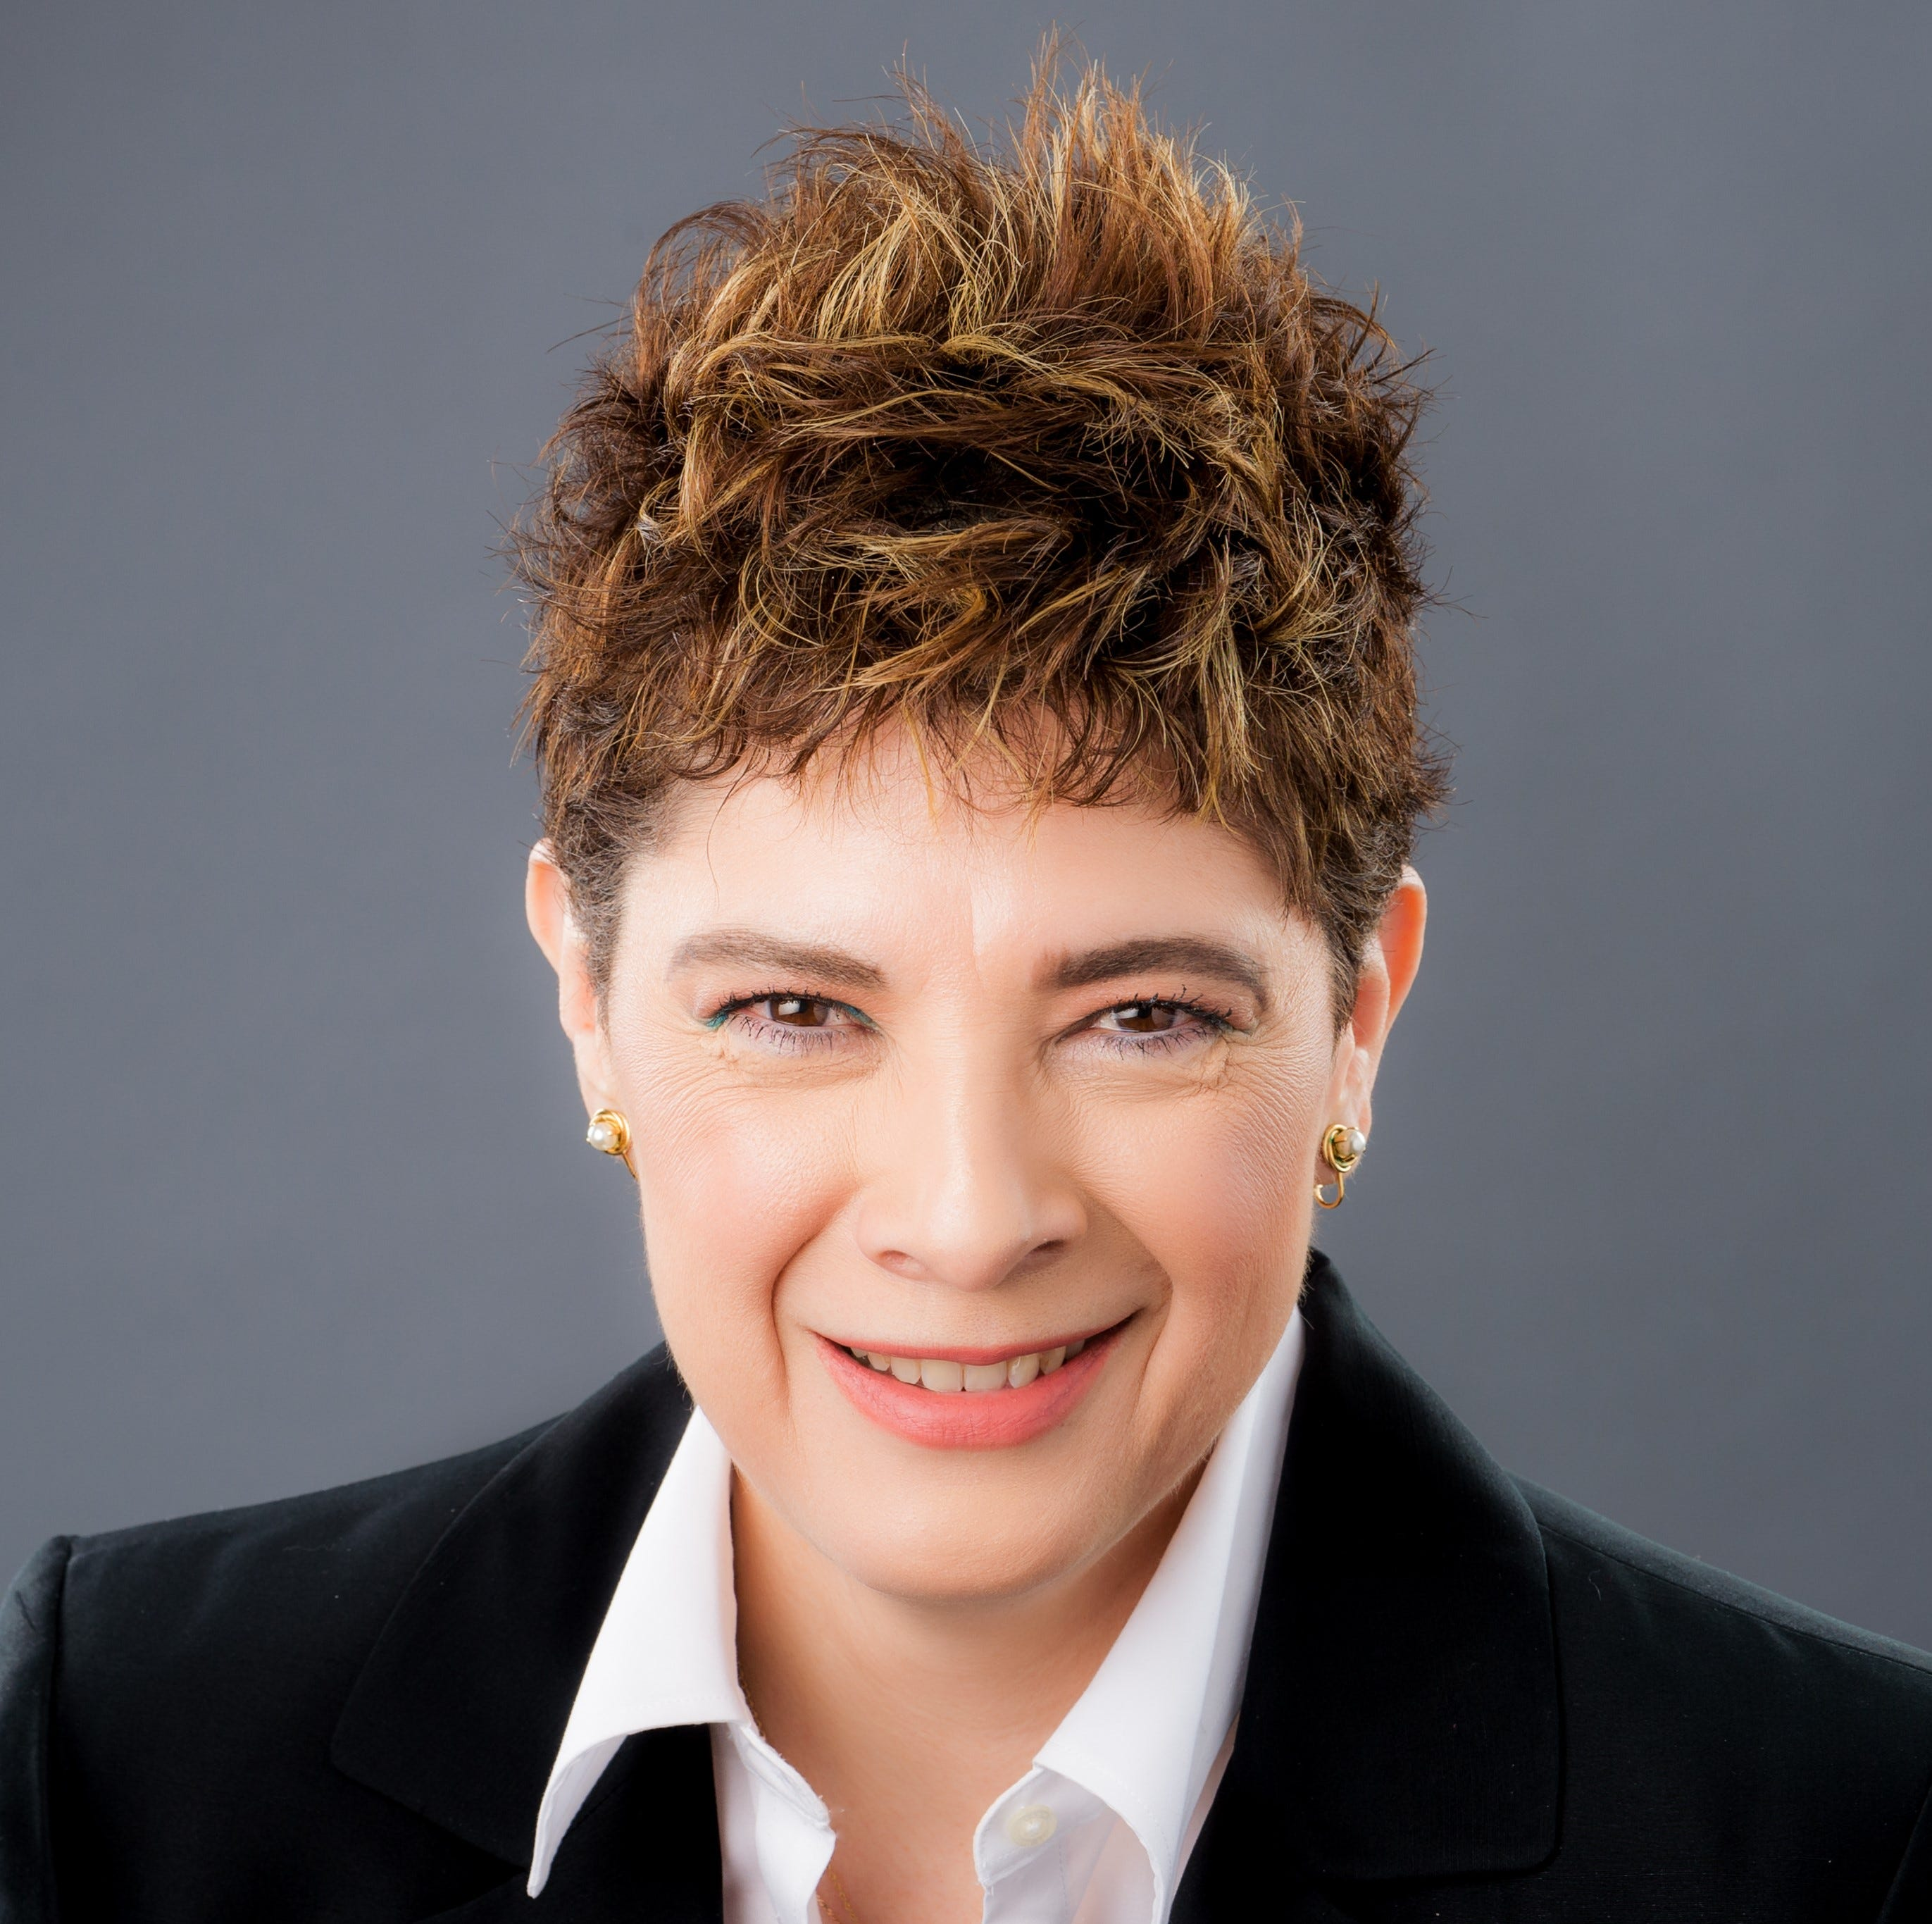 Guillermina Gonzalez to square off against Michael Smith in general election race for House District 22 seat